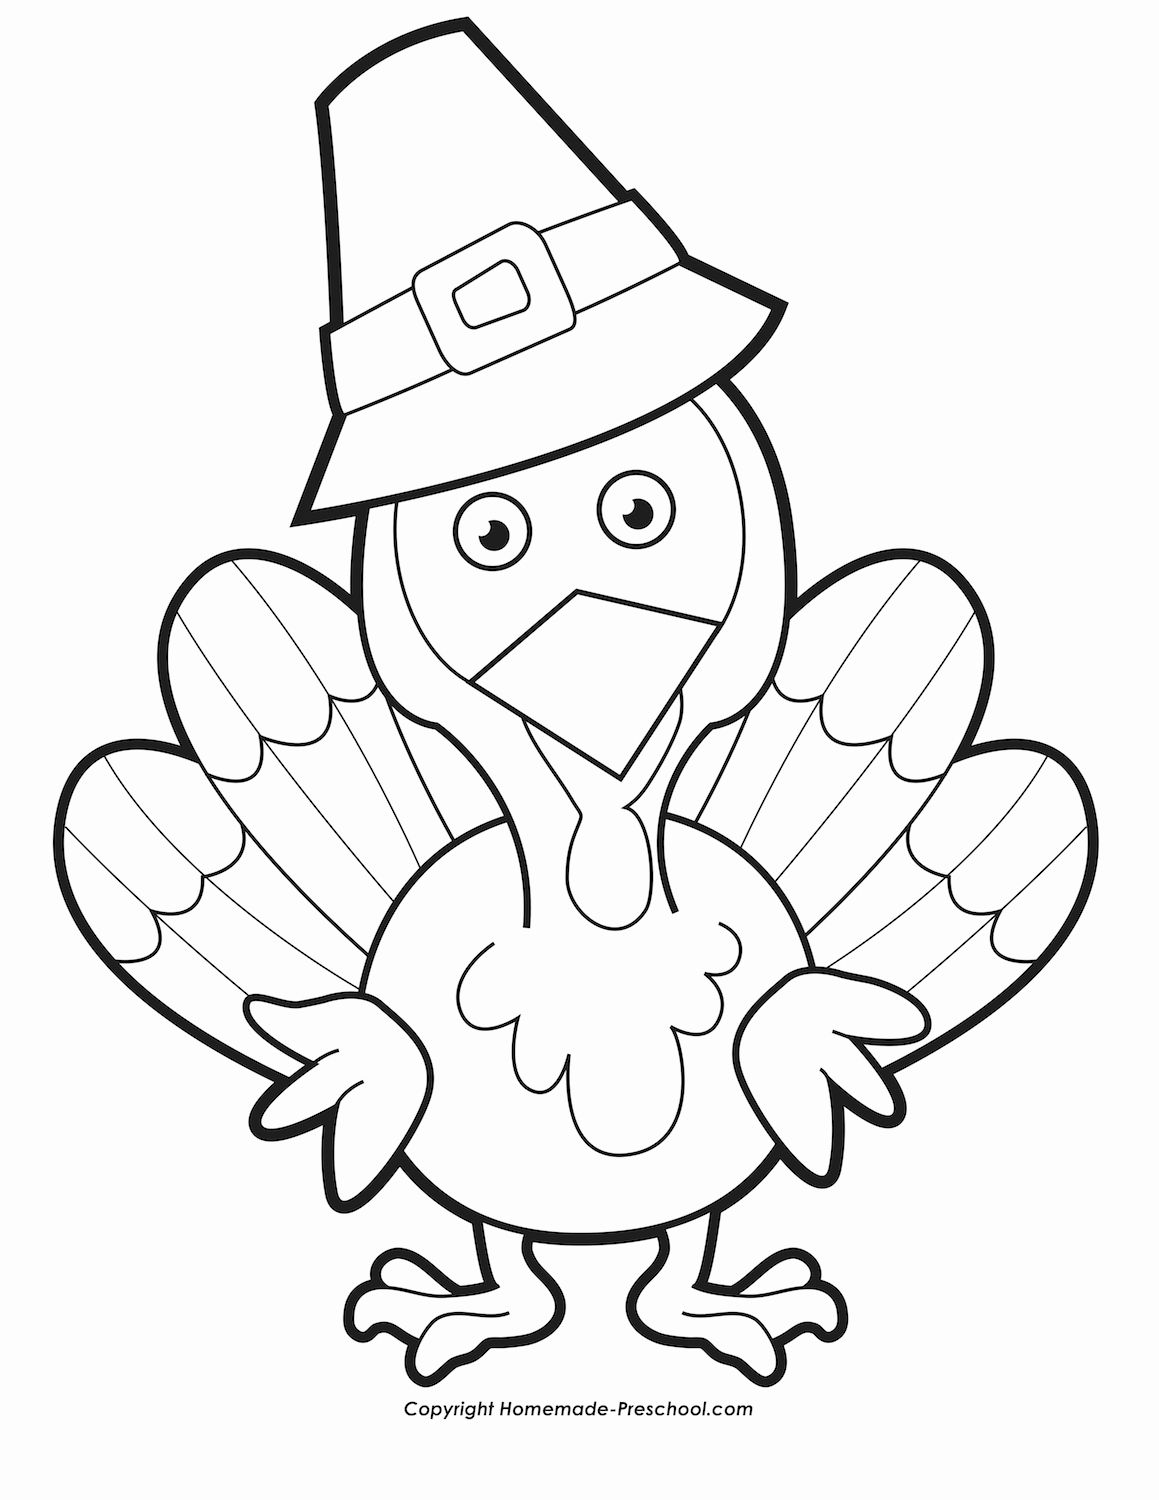 Thanksgiving Coloring Activity Sheets In